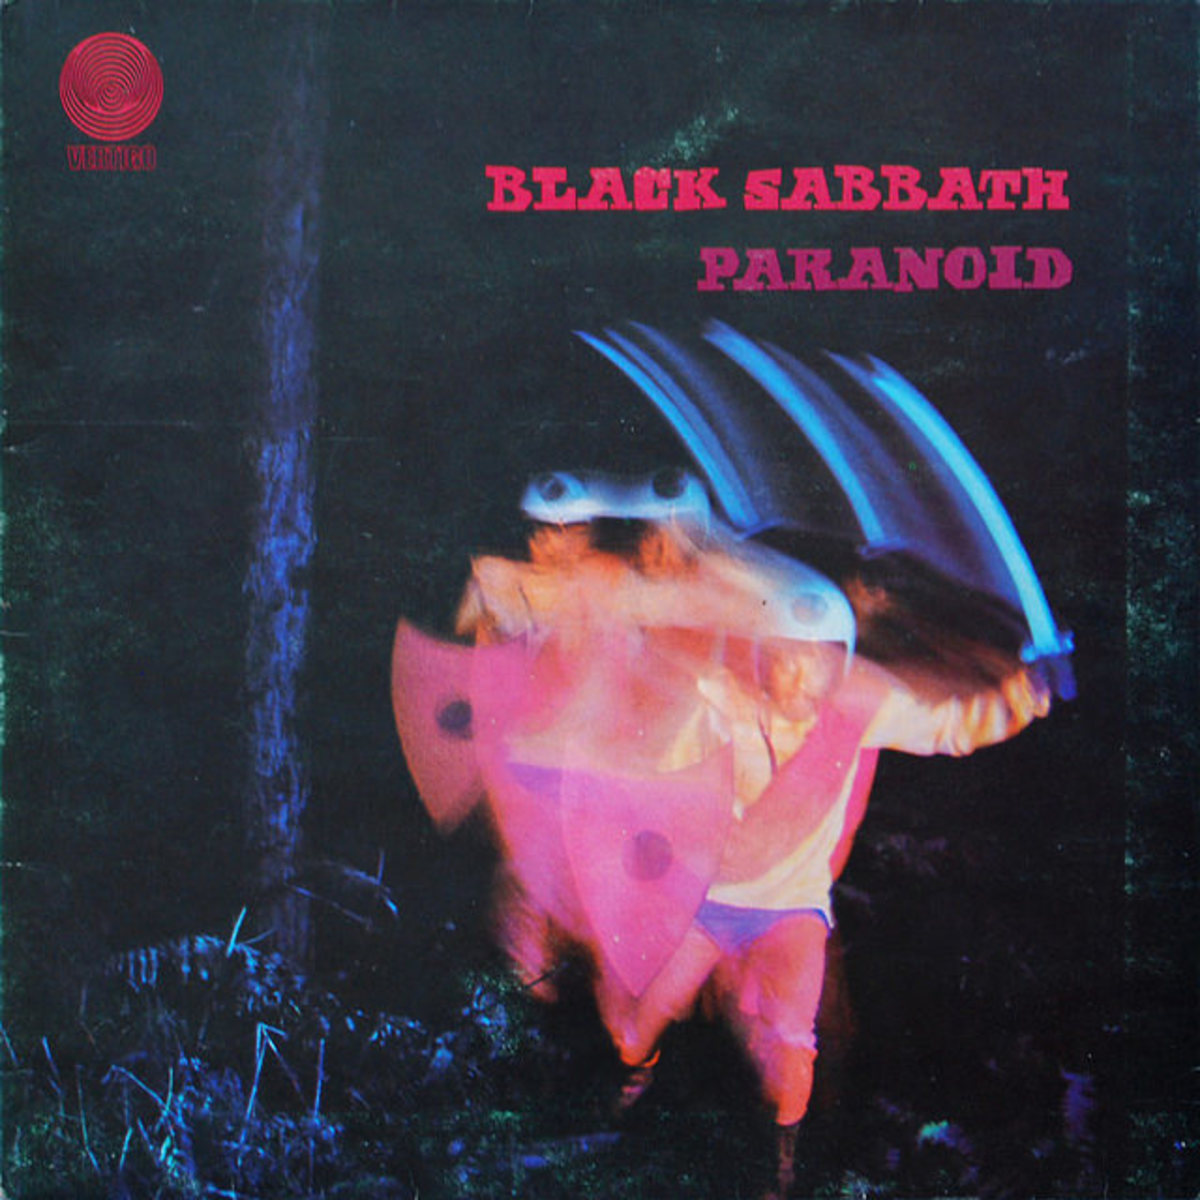 "Black Sabbath ‎""Paranoid"" Vertigo Records 6360 011 12"" Lp Vinyl Record, UK Pressing (1970) Gatefold Album Cover"